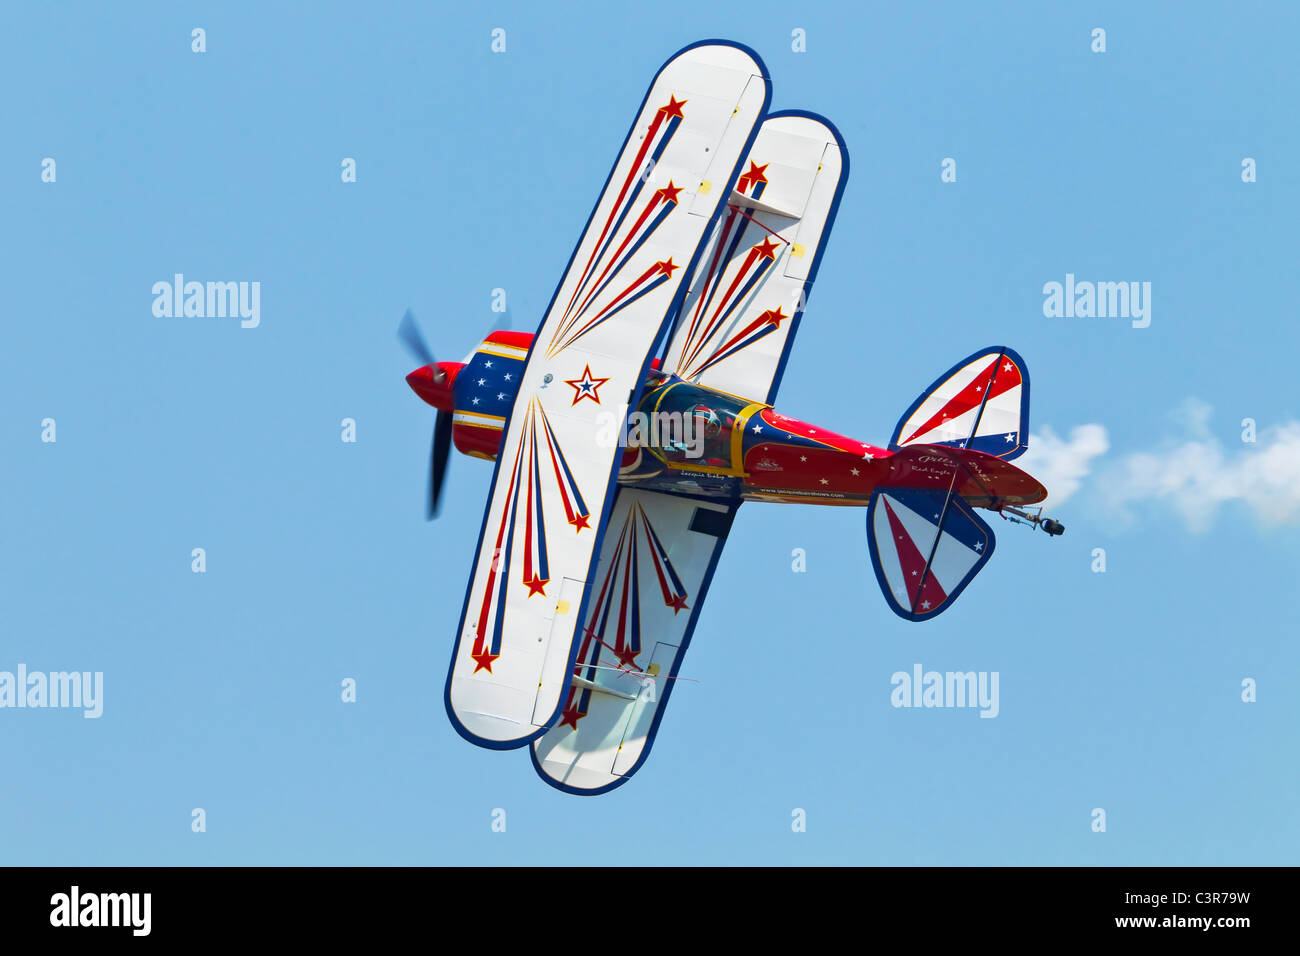 A Pitts S2a Aerobatic bi-plane during its display - Stock Image